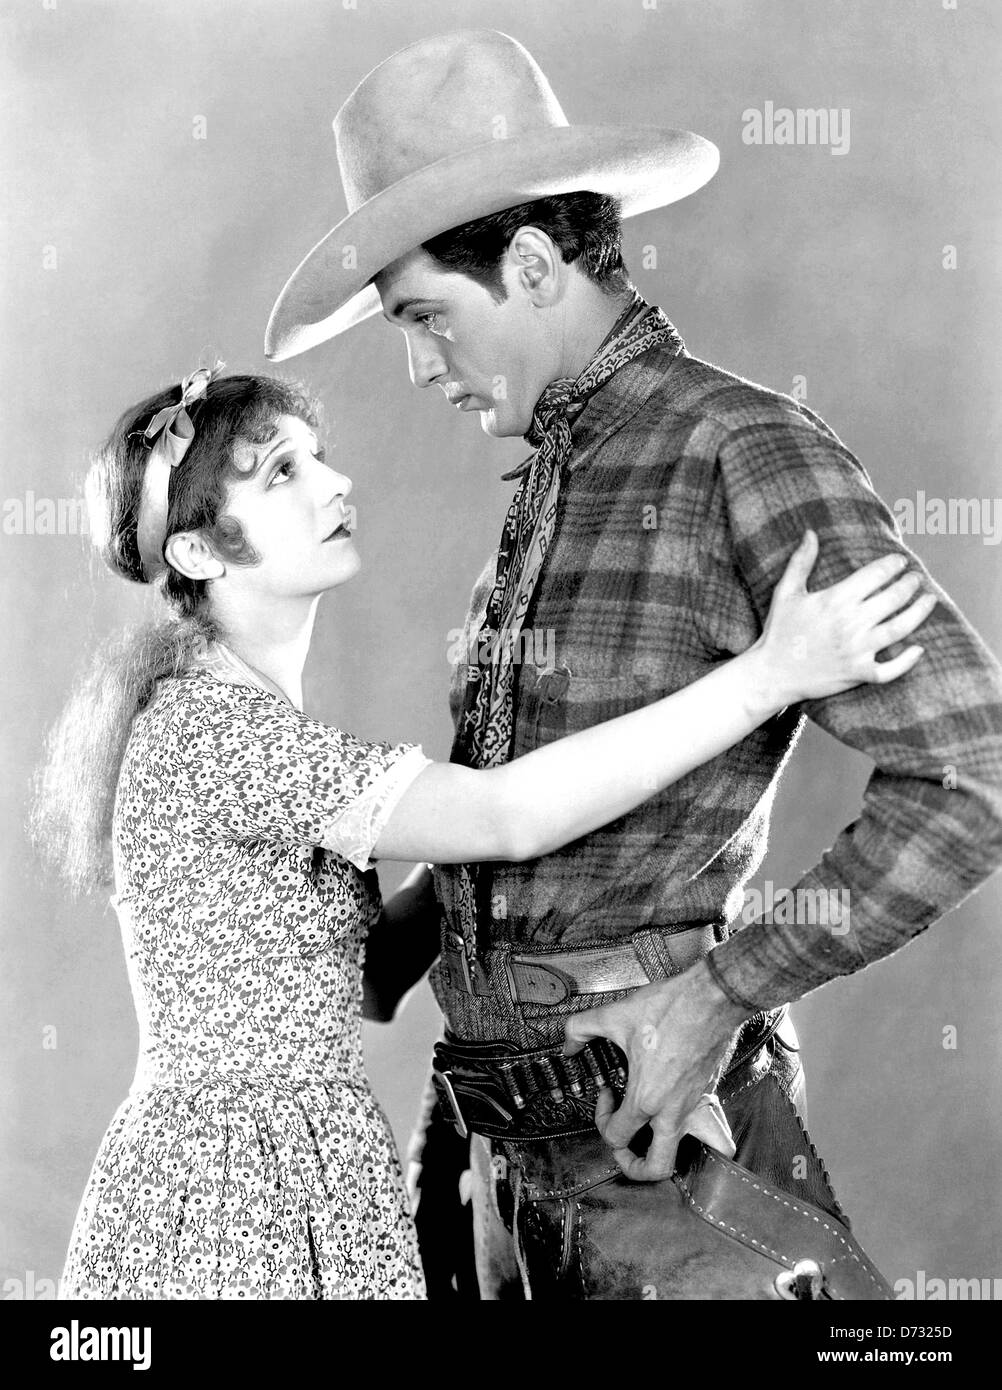 ARIZONA BOUND 1927 Famous Players film with Gary Cooper and Betty Jewel - Stock Image